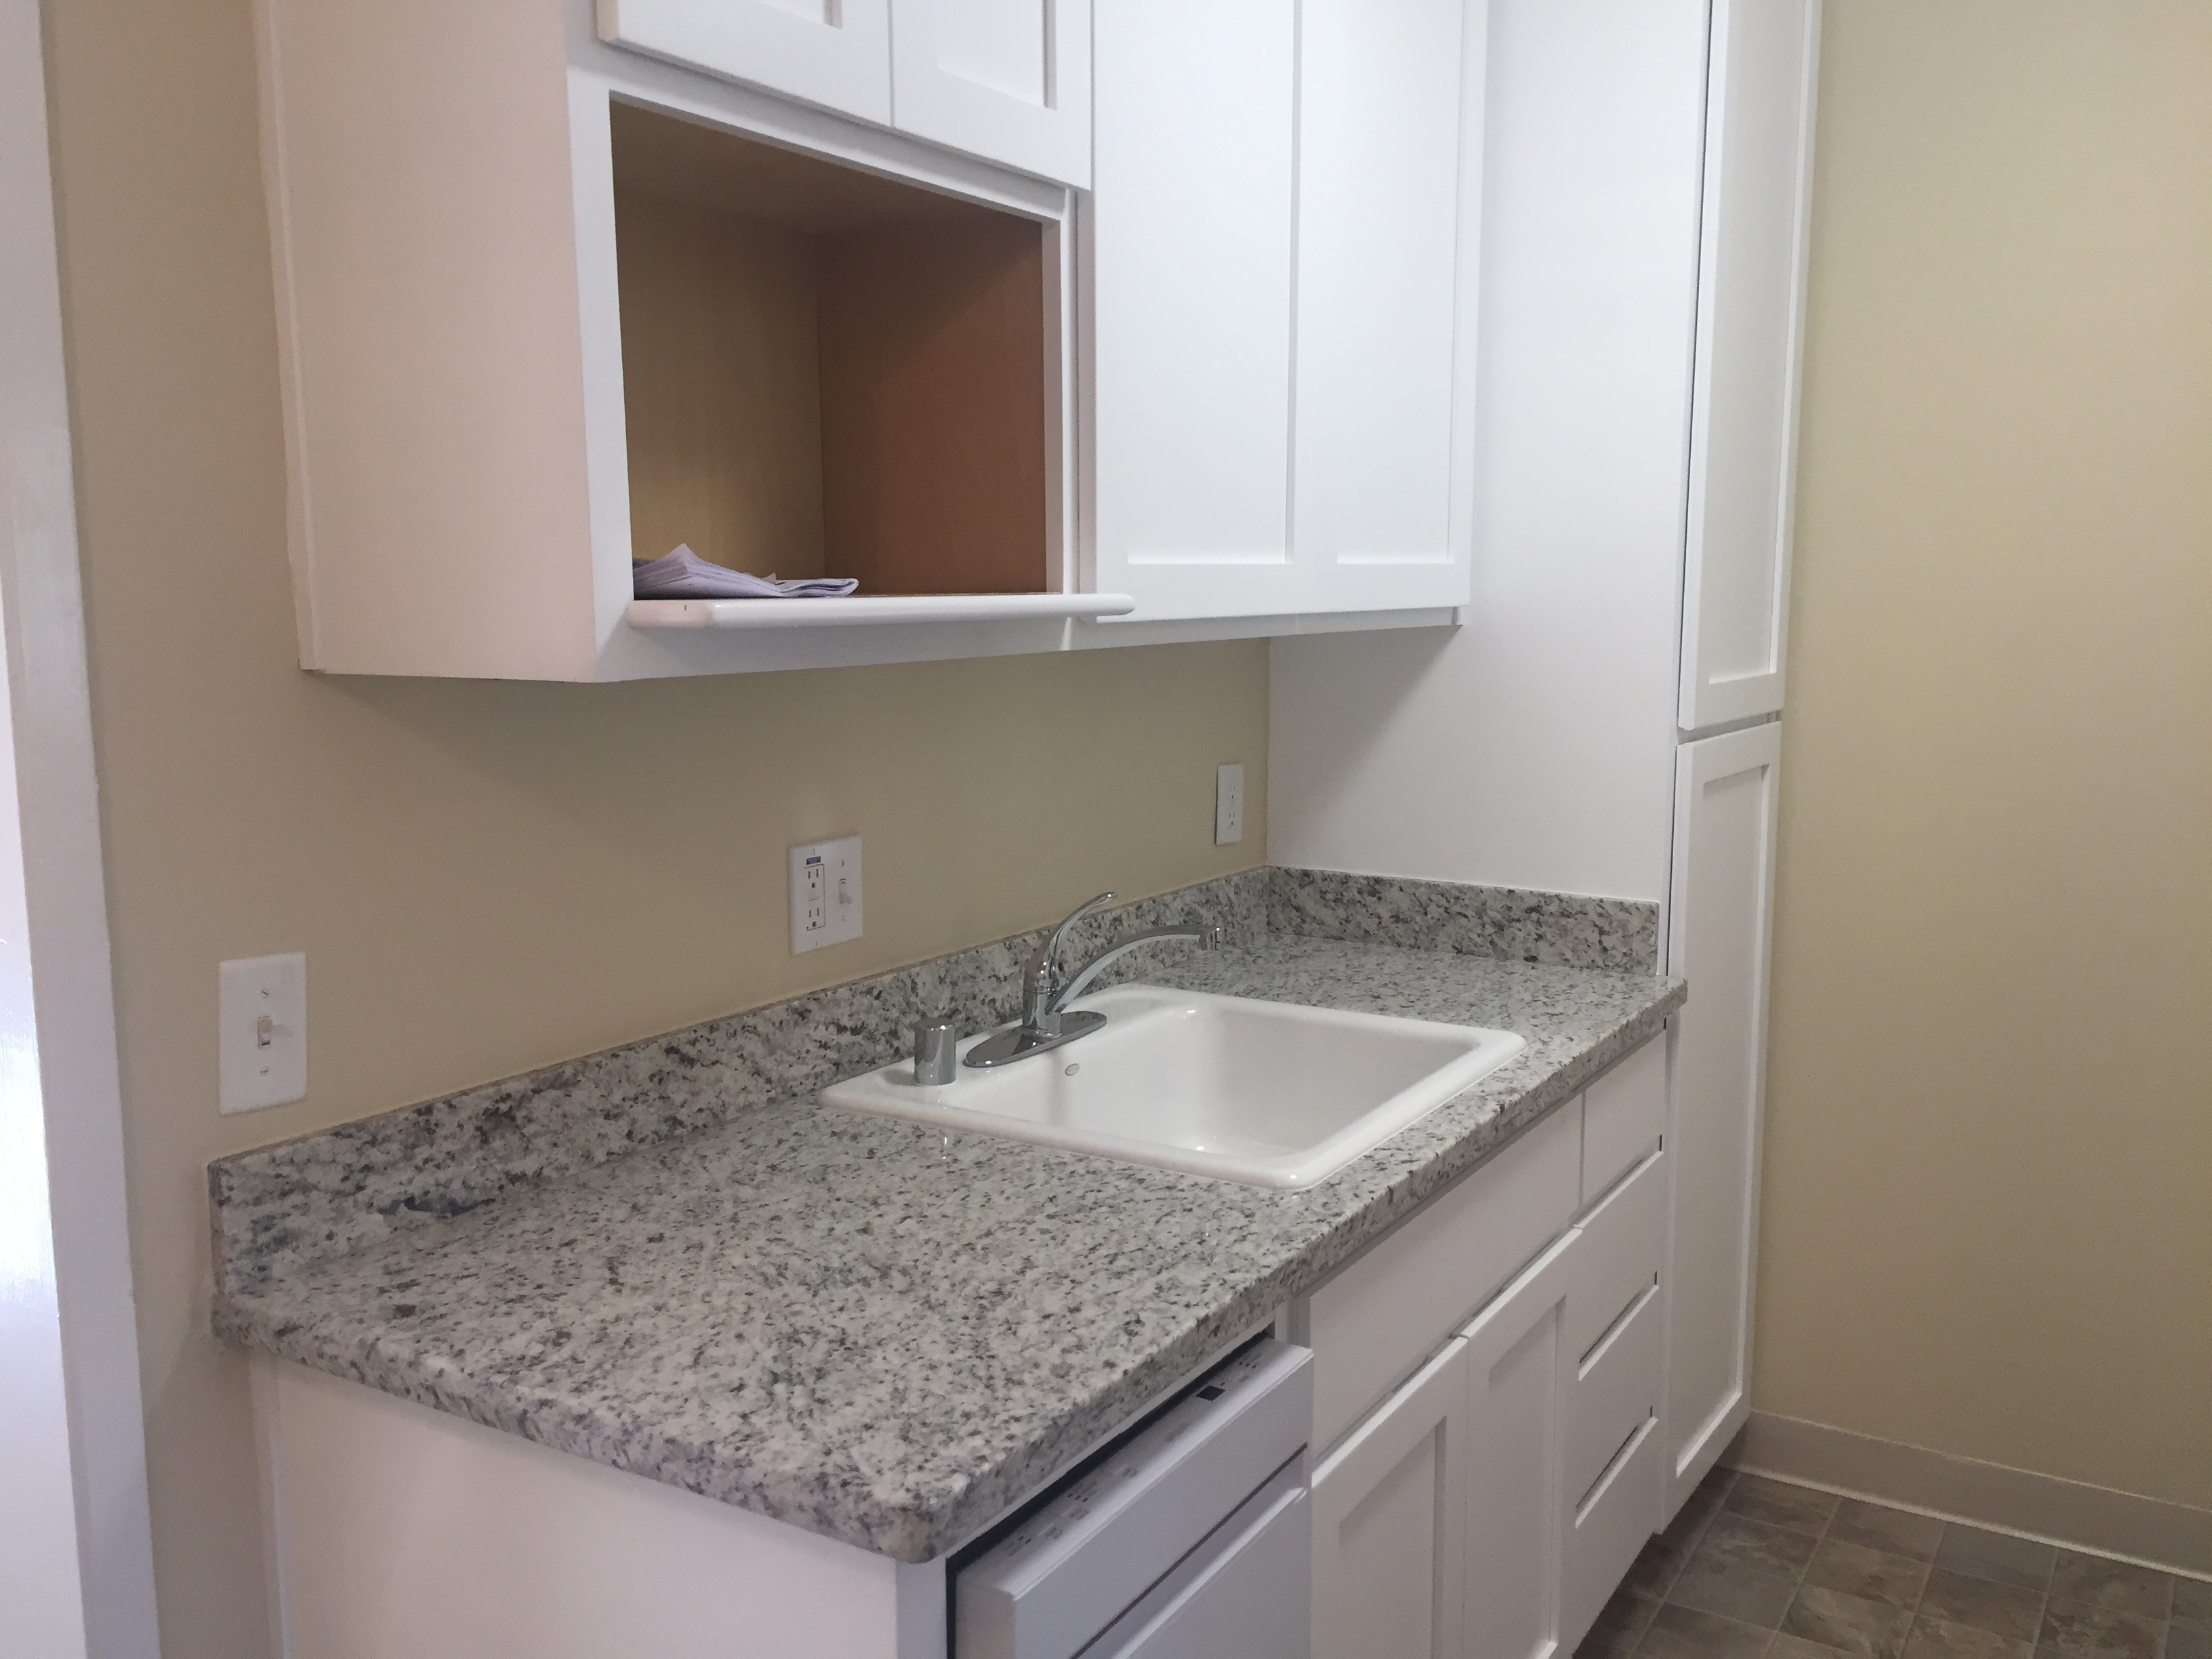 It will also have a new dishwasher and shelf for your microwave